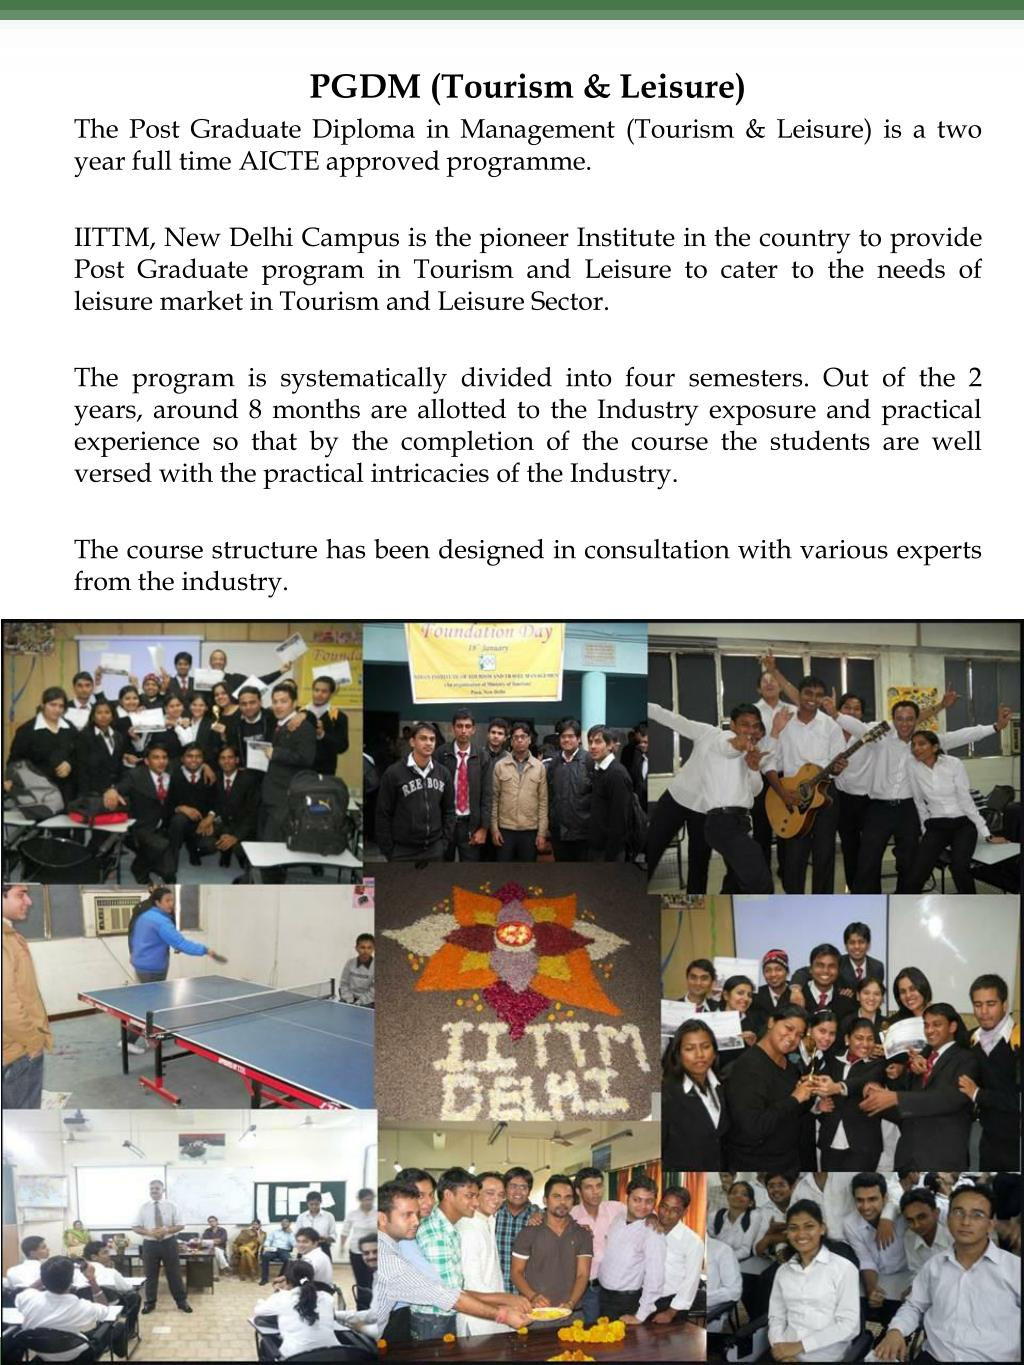 PGDM (Tourism & Leisure)